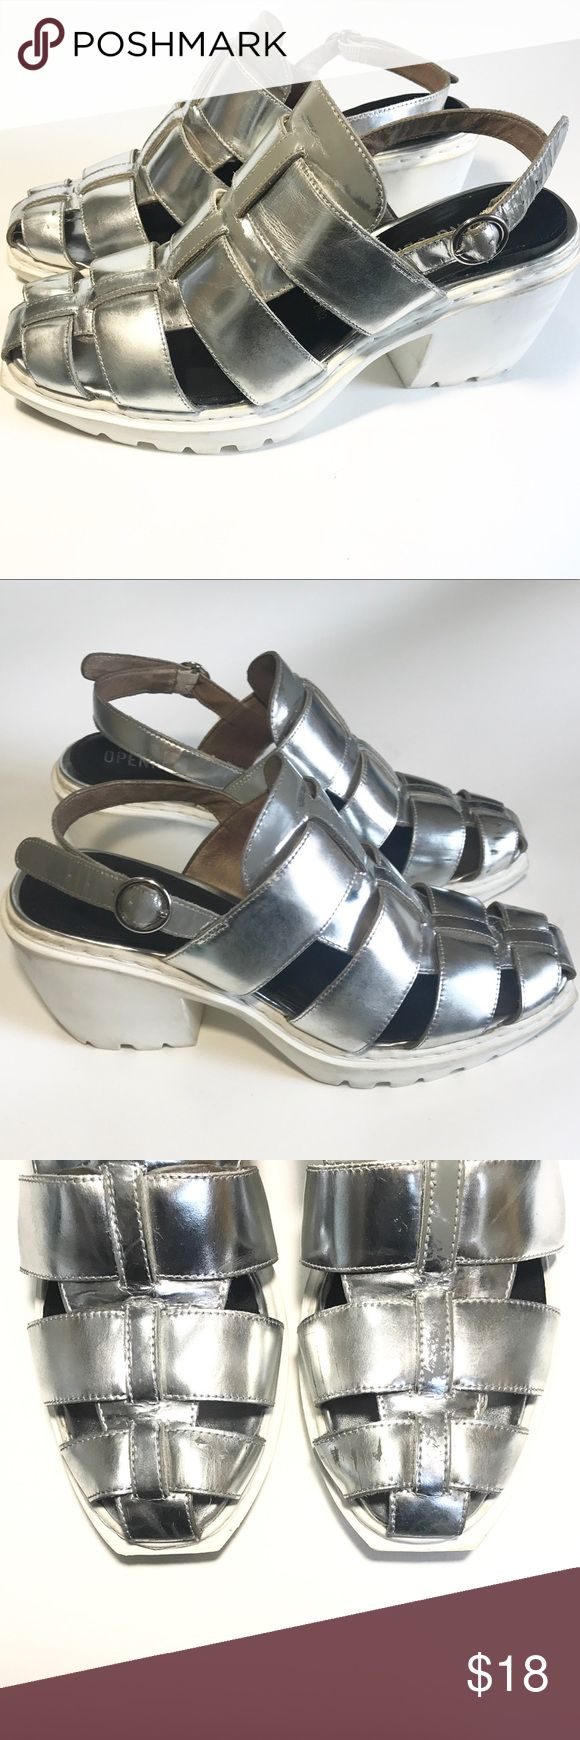 OPENING CEREMONY Silver/White Woven Platforms Silver/white woven slingback platform sandals. Size 7.5/8 Can be worn with socks in the winter for a trendy look or paired with shorts in the summer months. Priced as is, condition: ok - good, photos of wear are included. Opening Ceremony Shoes Platforms